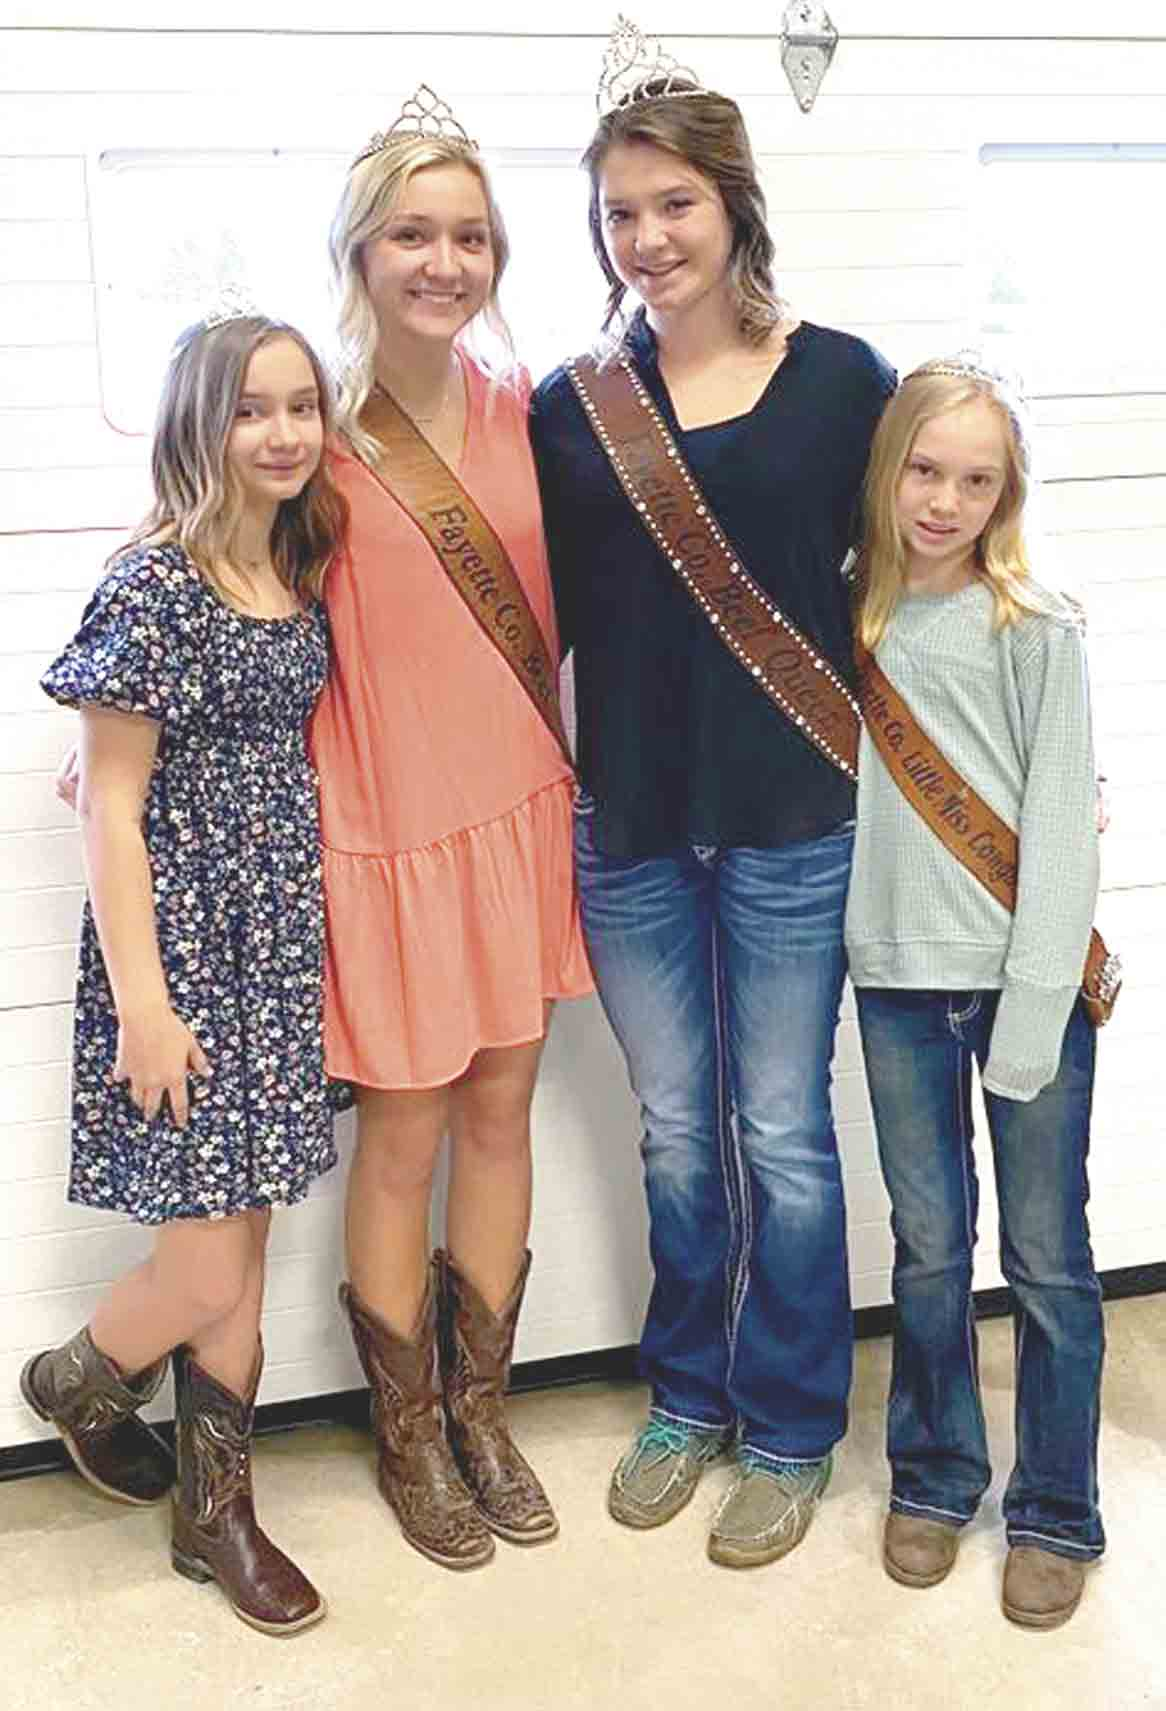 The 2021 Fayette County Beef Royalty were crowned recently. The new Beef Queen is Kasydi Meyer (second from right). The new Beef Princess is Isabelle Steinbronn (second from left). Little Miss Cowgirls are Sam Steinbronn and Autumn Miller. The 2021 Beef Banquet will be held sometime in June...